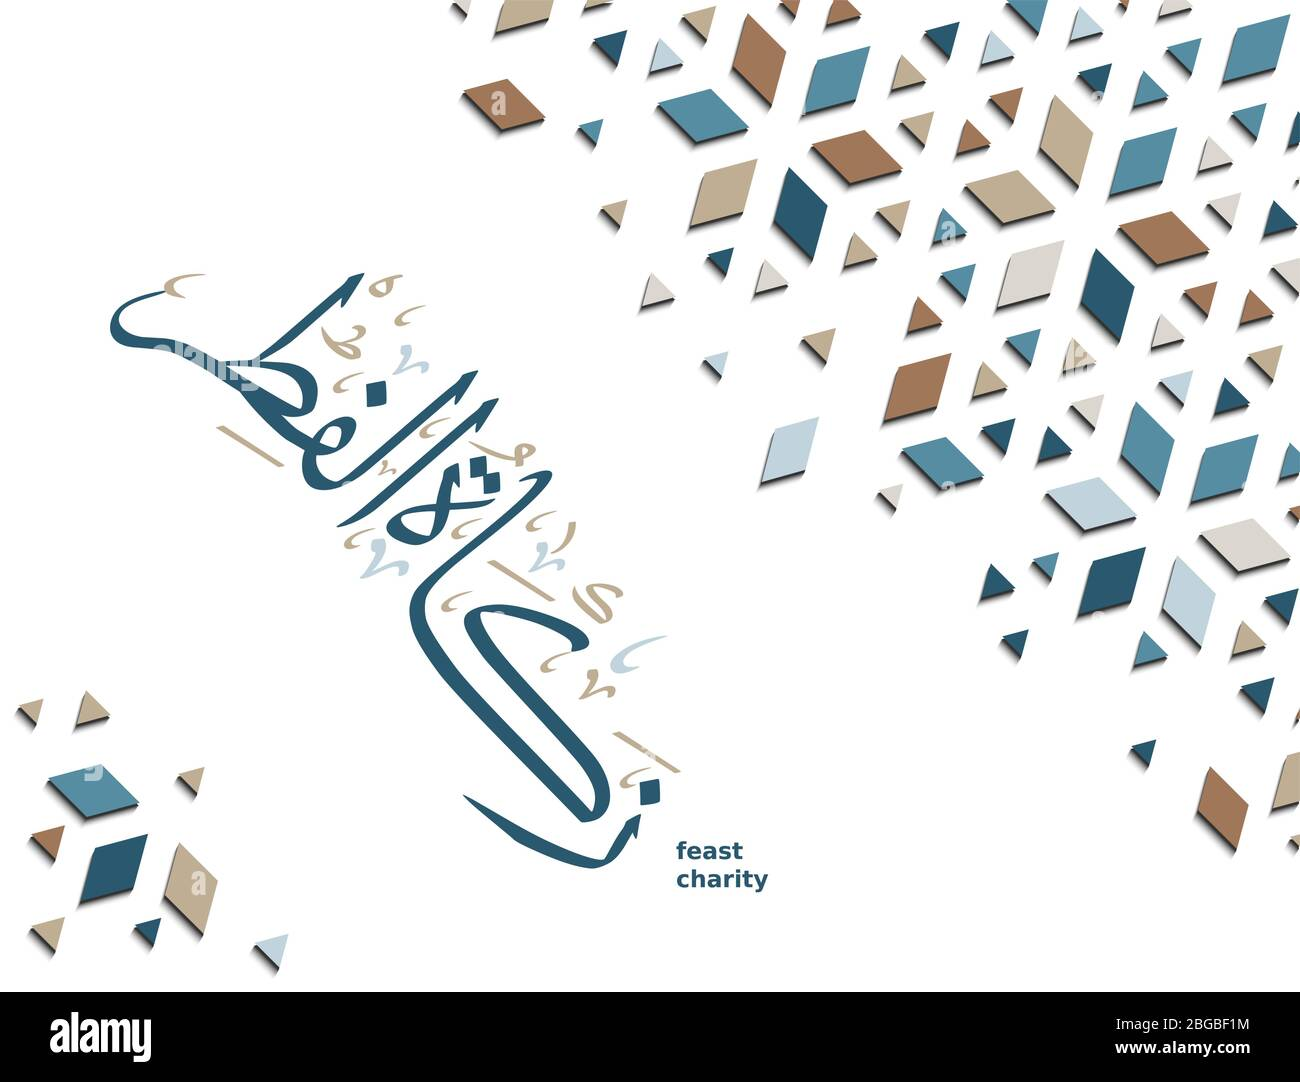 zakat high resolution stock photography and images alamy https www alamy com arabic calligraphy means feast charity vector card design for zakat al fitr of ramadan image354295136 html